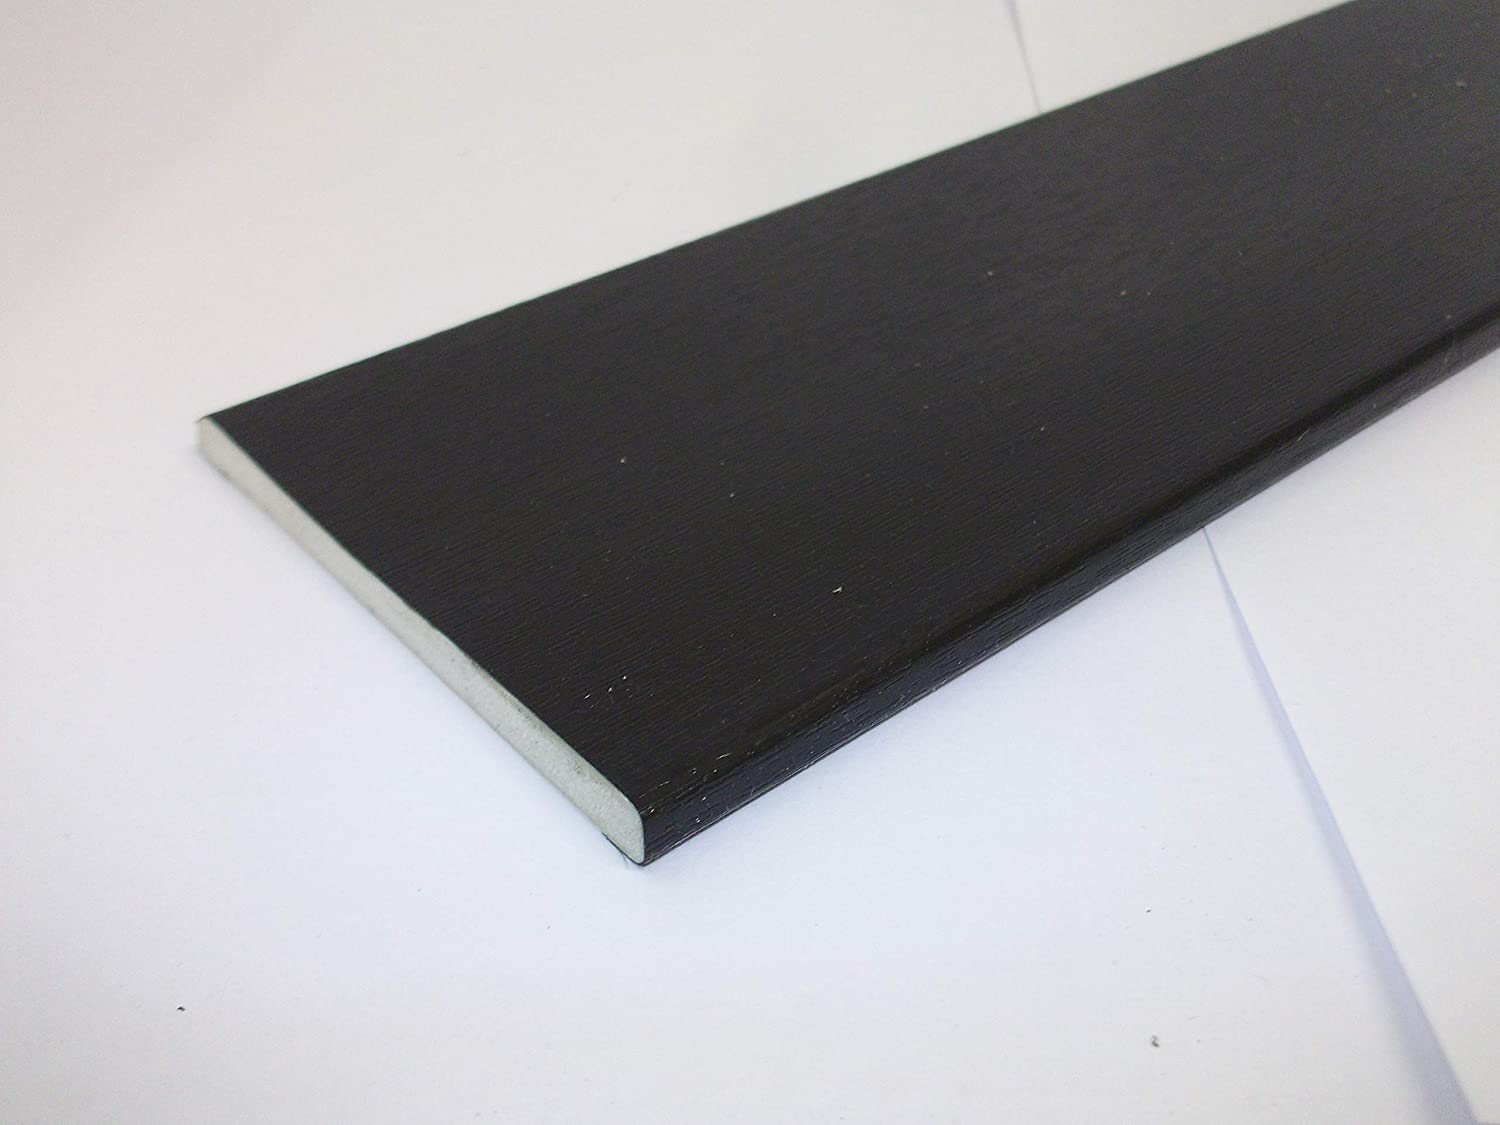 65mm Black Ash 450mm Length PVC UPVC Window Flat Trim Architrave Fillet Finish Capping Innovo